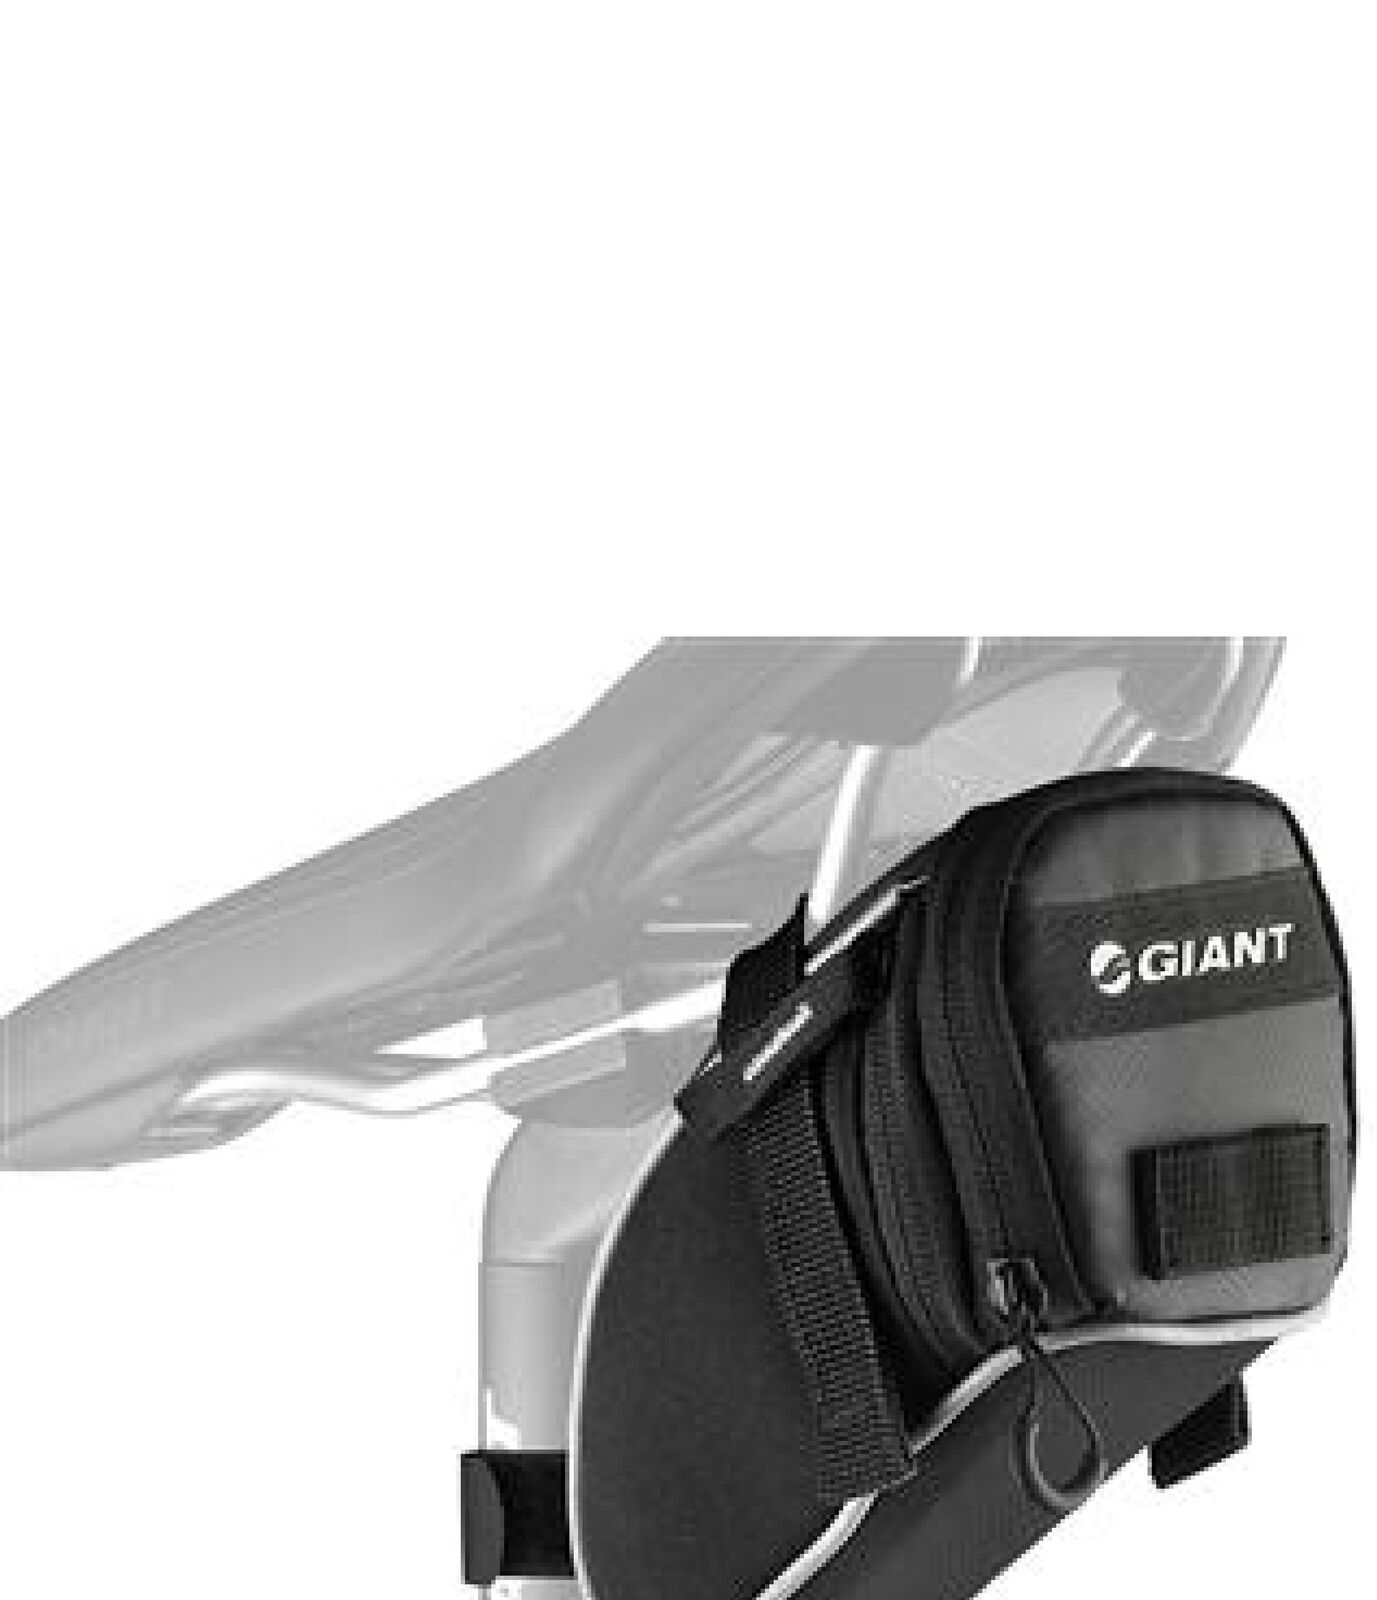 Giant Shadow DX Selle Selle Selle Sac (S, M, L) 8055e2